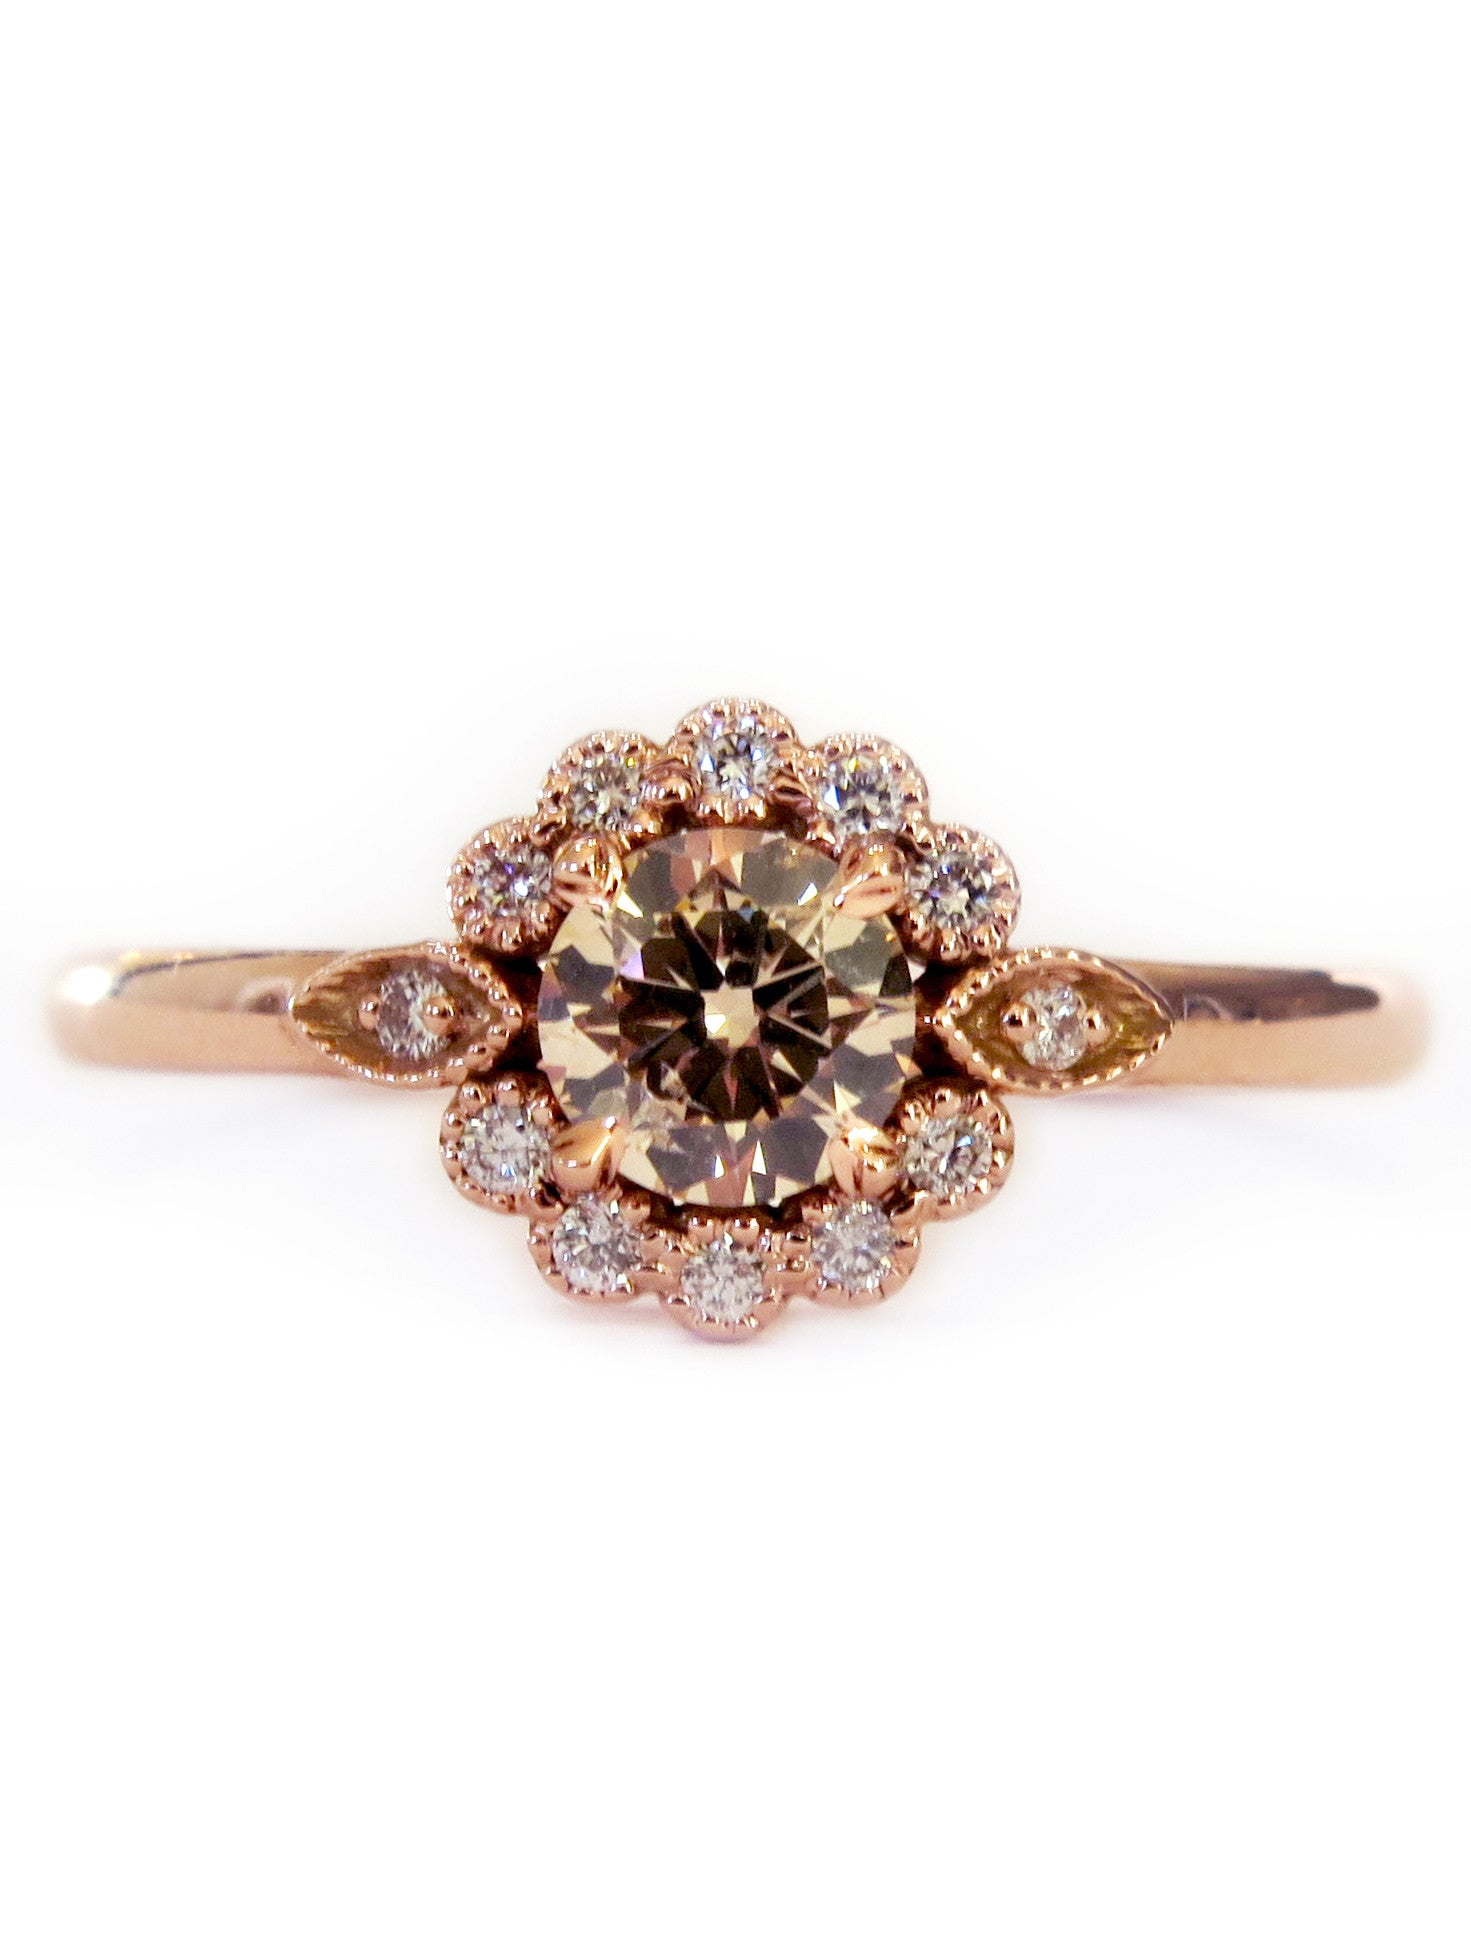 29268d43f Milo-Unique-Rose-Gold-Halo-Engagement-Ring -Floral-Delicate-Low-Profile-Dana-Walden-Bridal-NYC_37a13d06-faad-4e7b-968c-54f92a85b989.jpg?v=1495048150